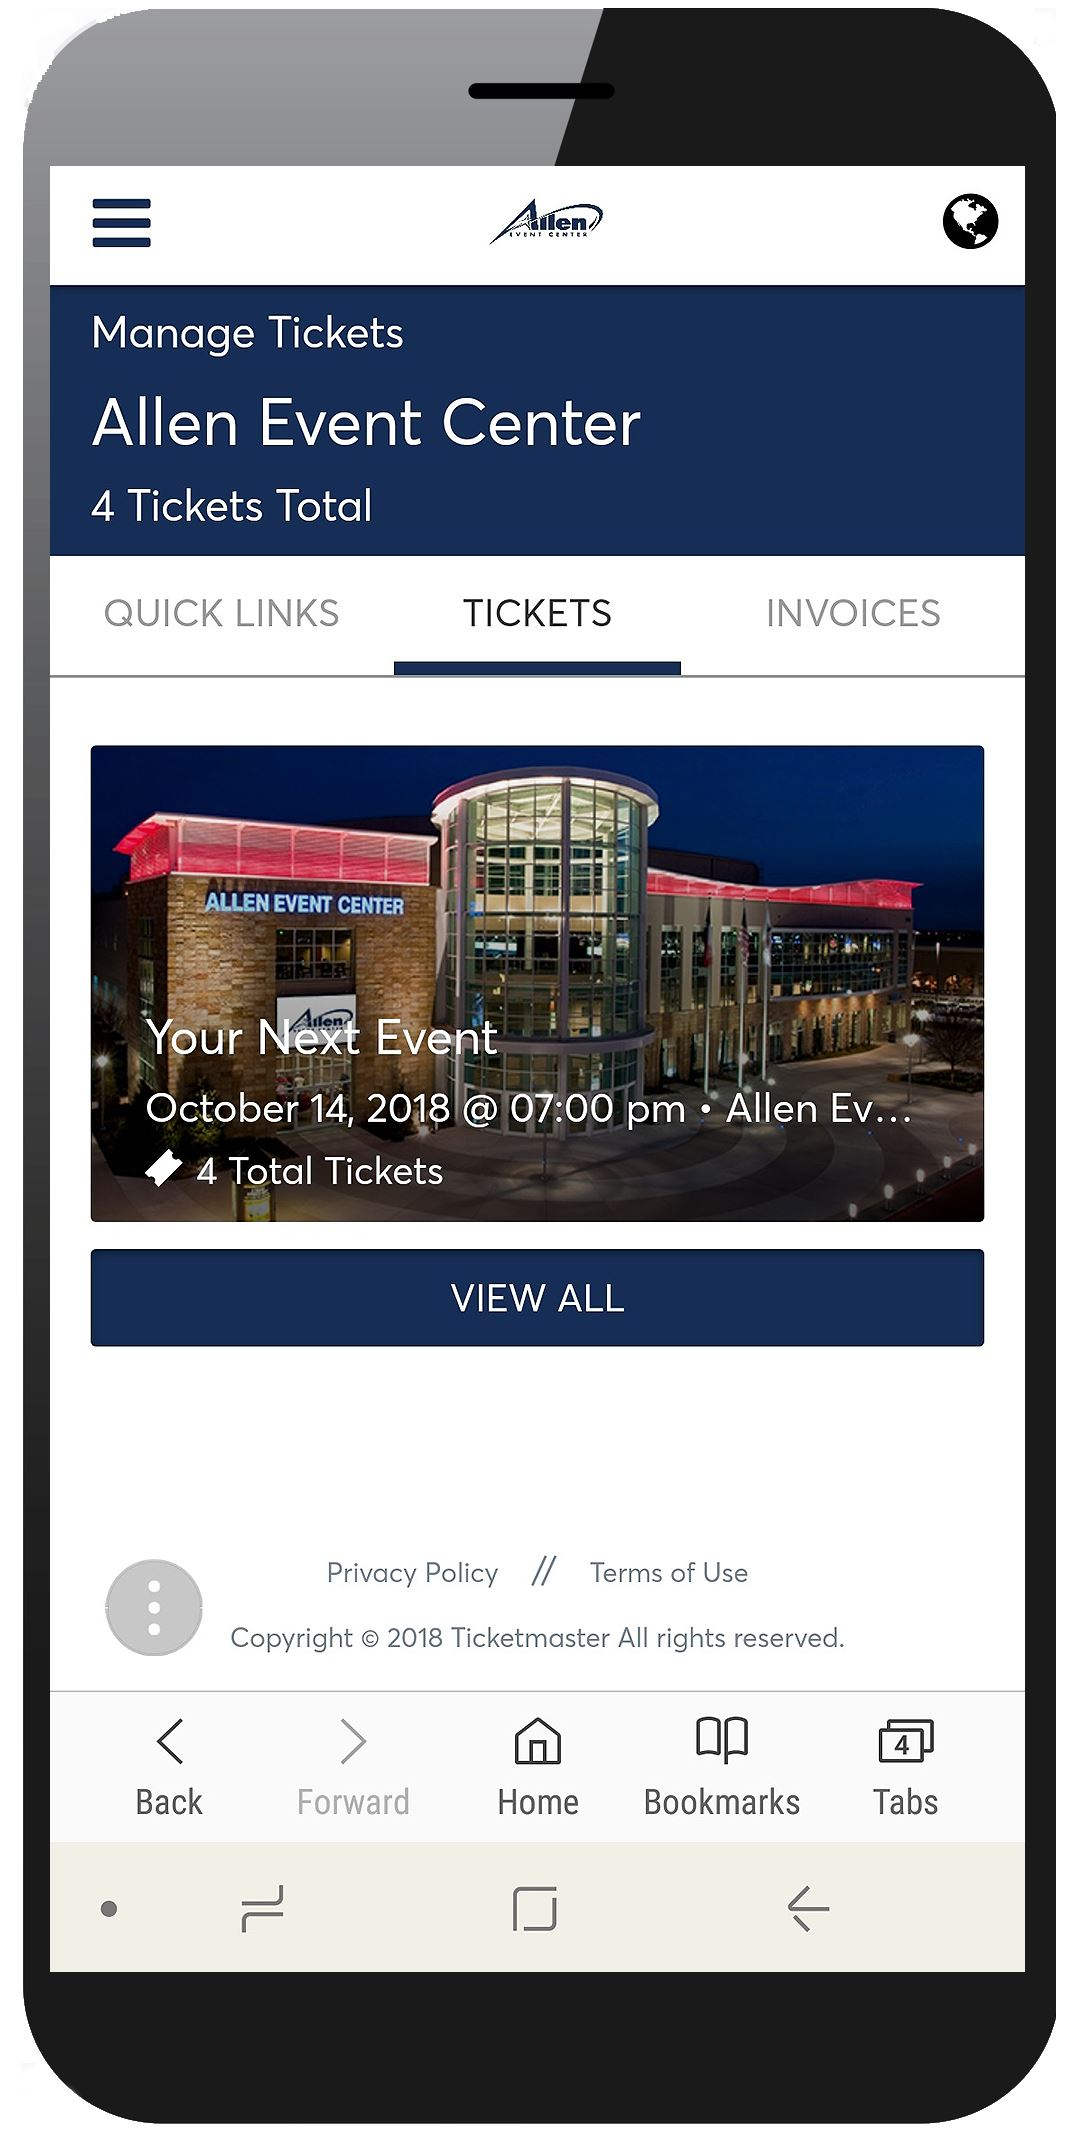 Picture of Account Manager Manage Tickets Page